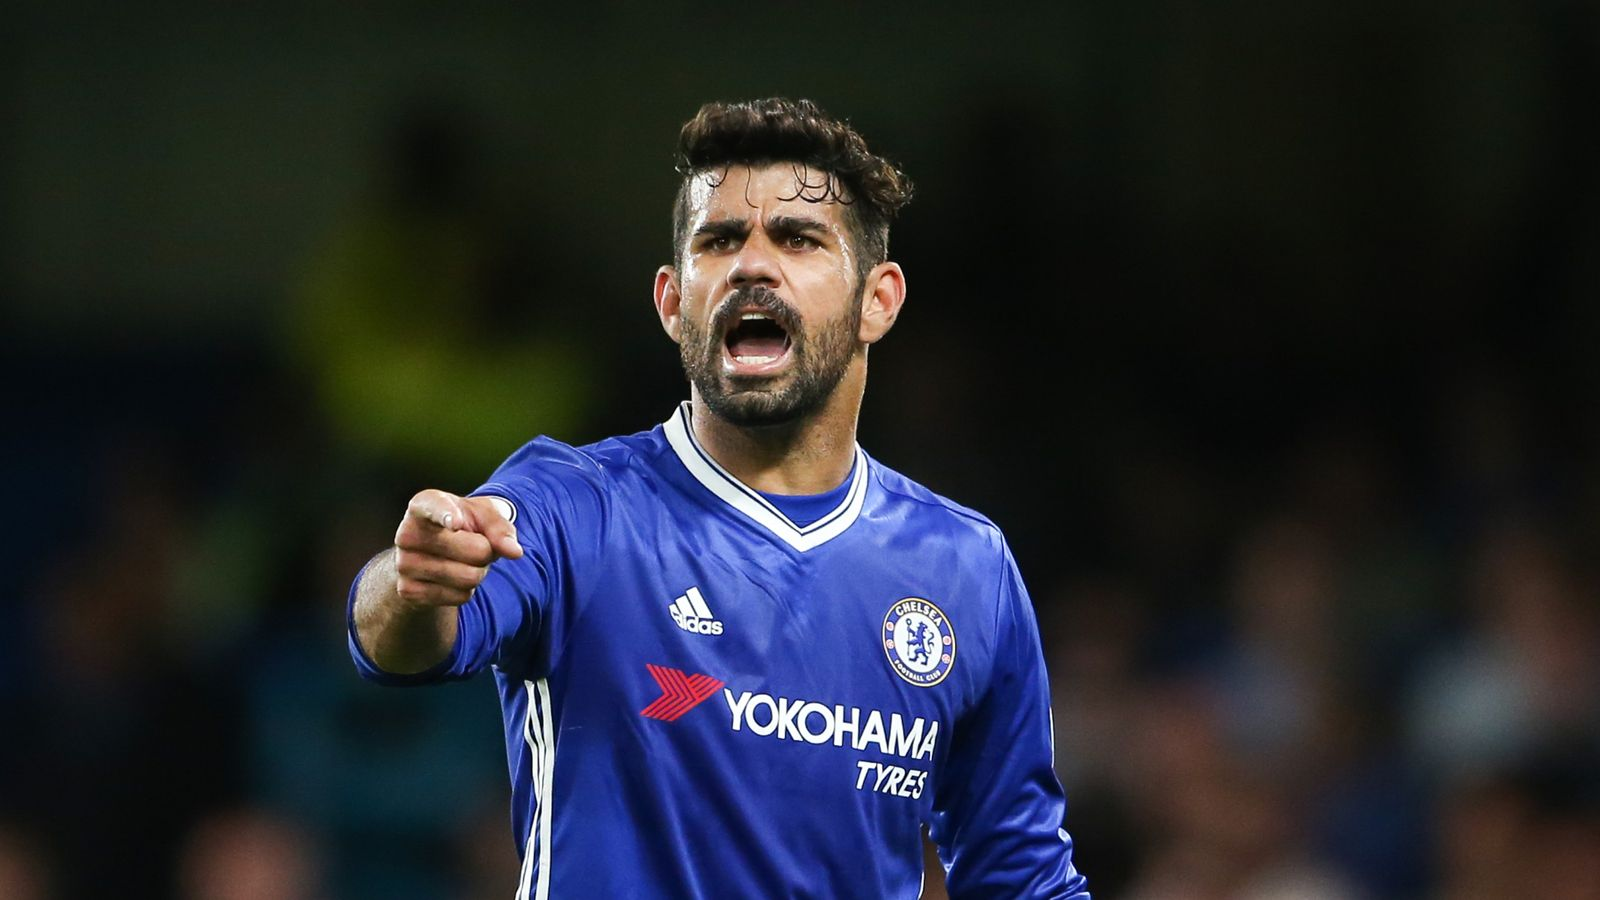 No player including Diego Costa bigger than the club says Simon